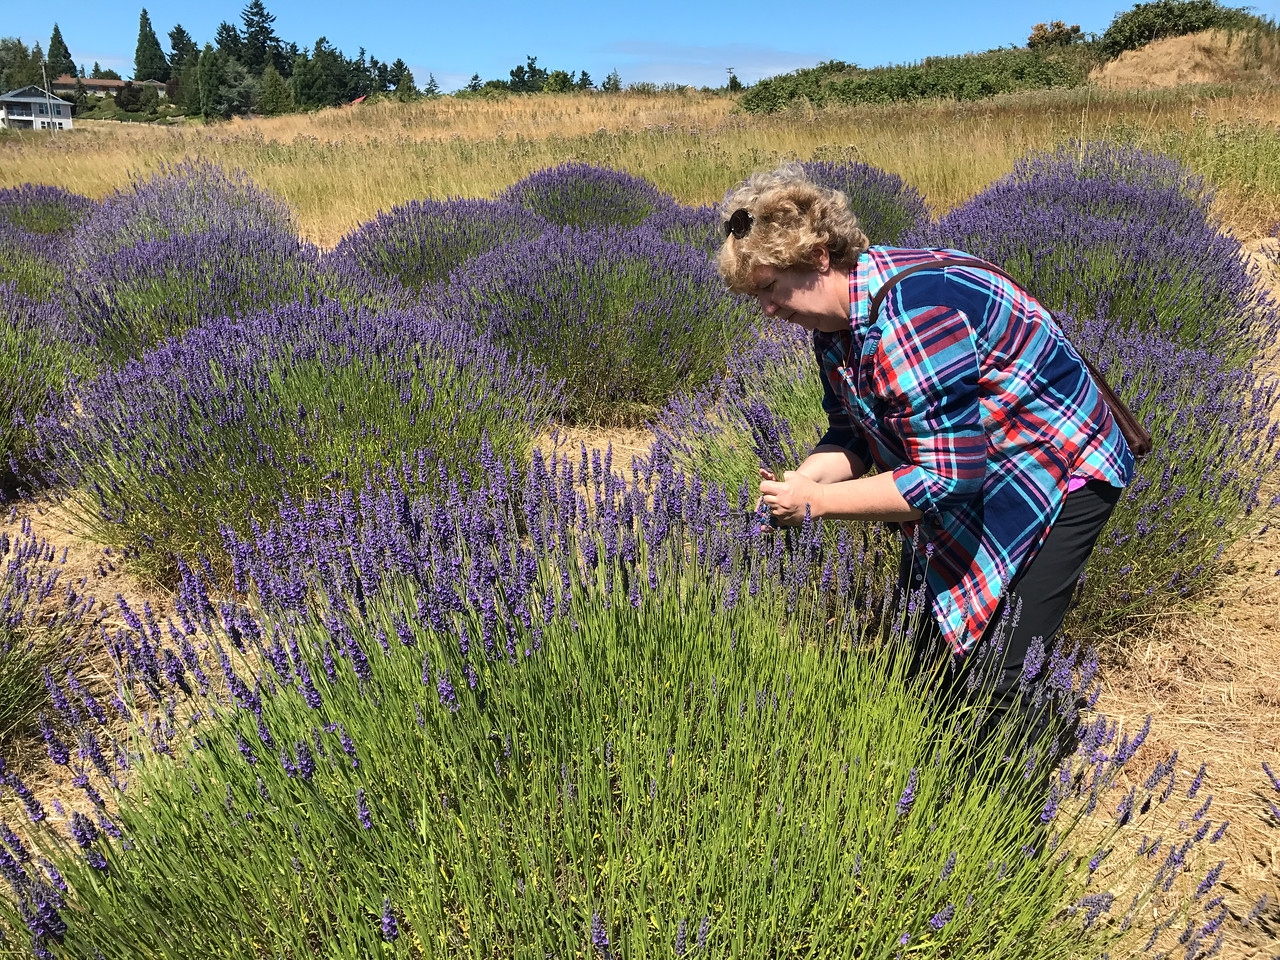 You-pick lavender